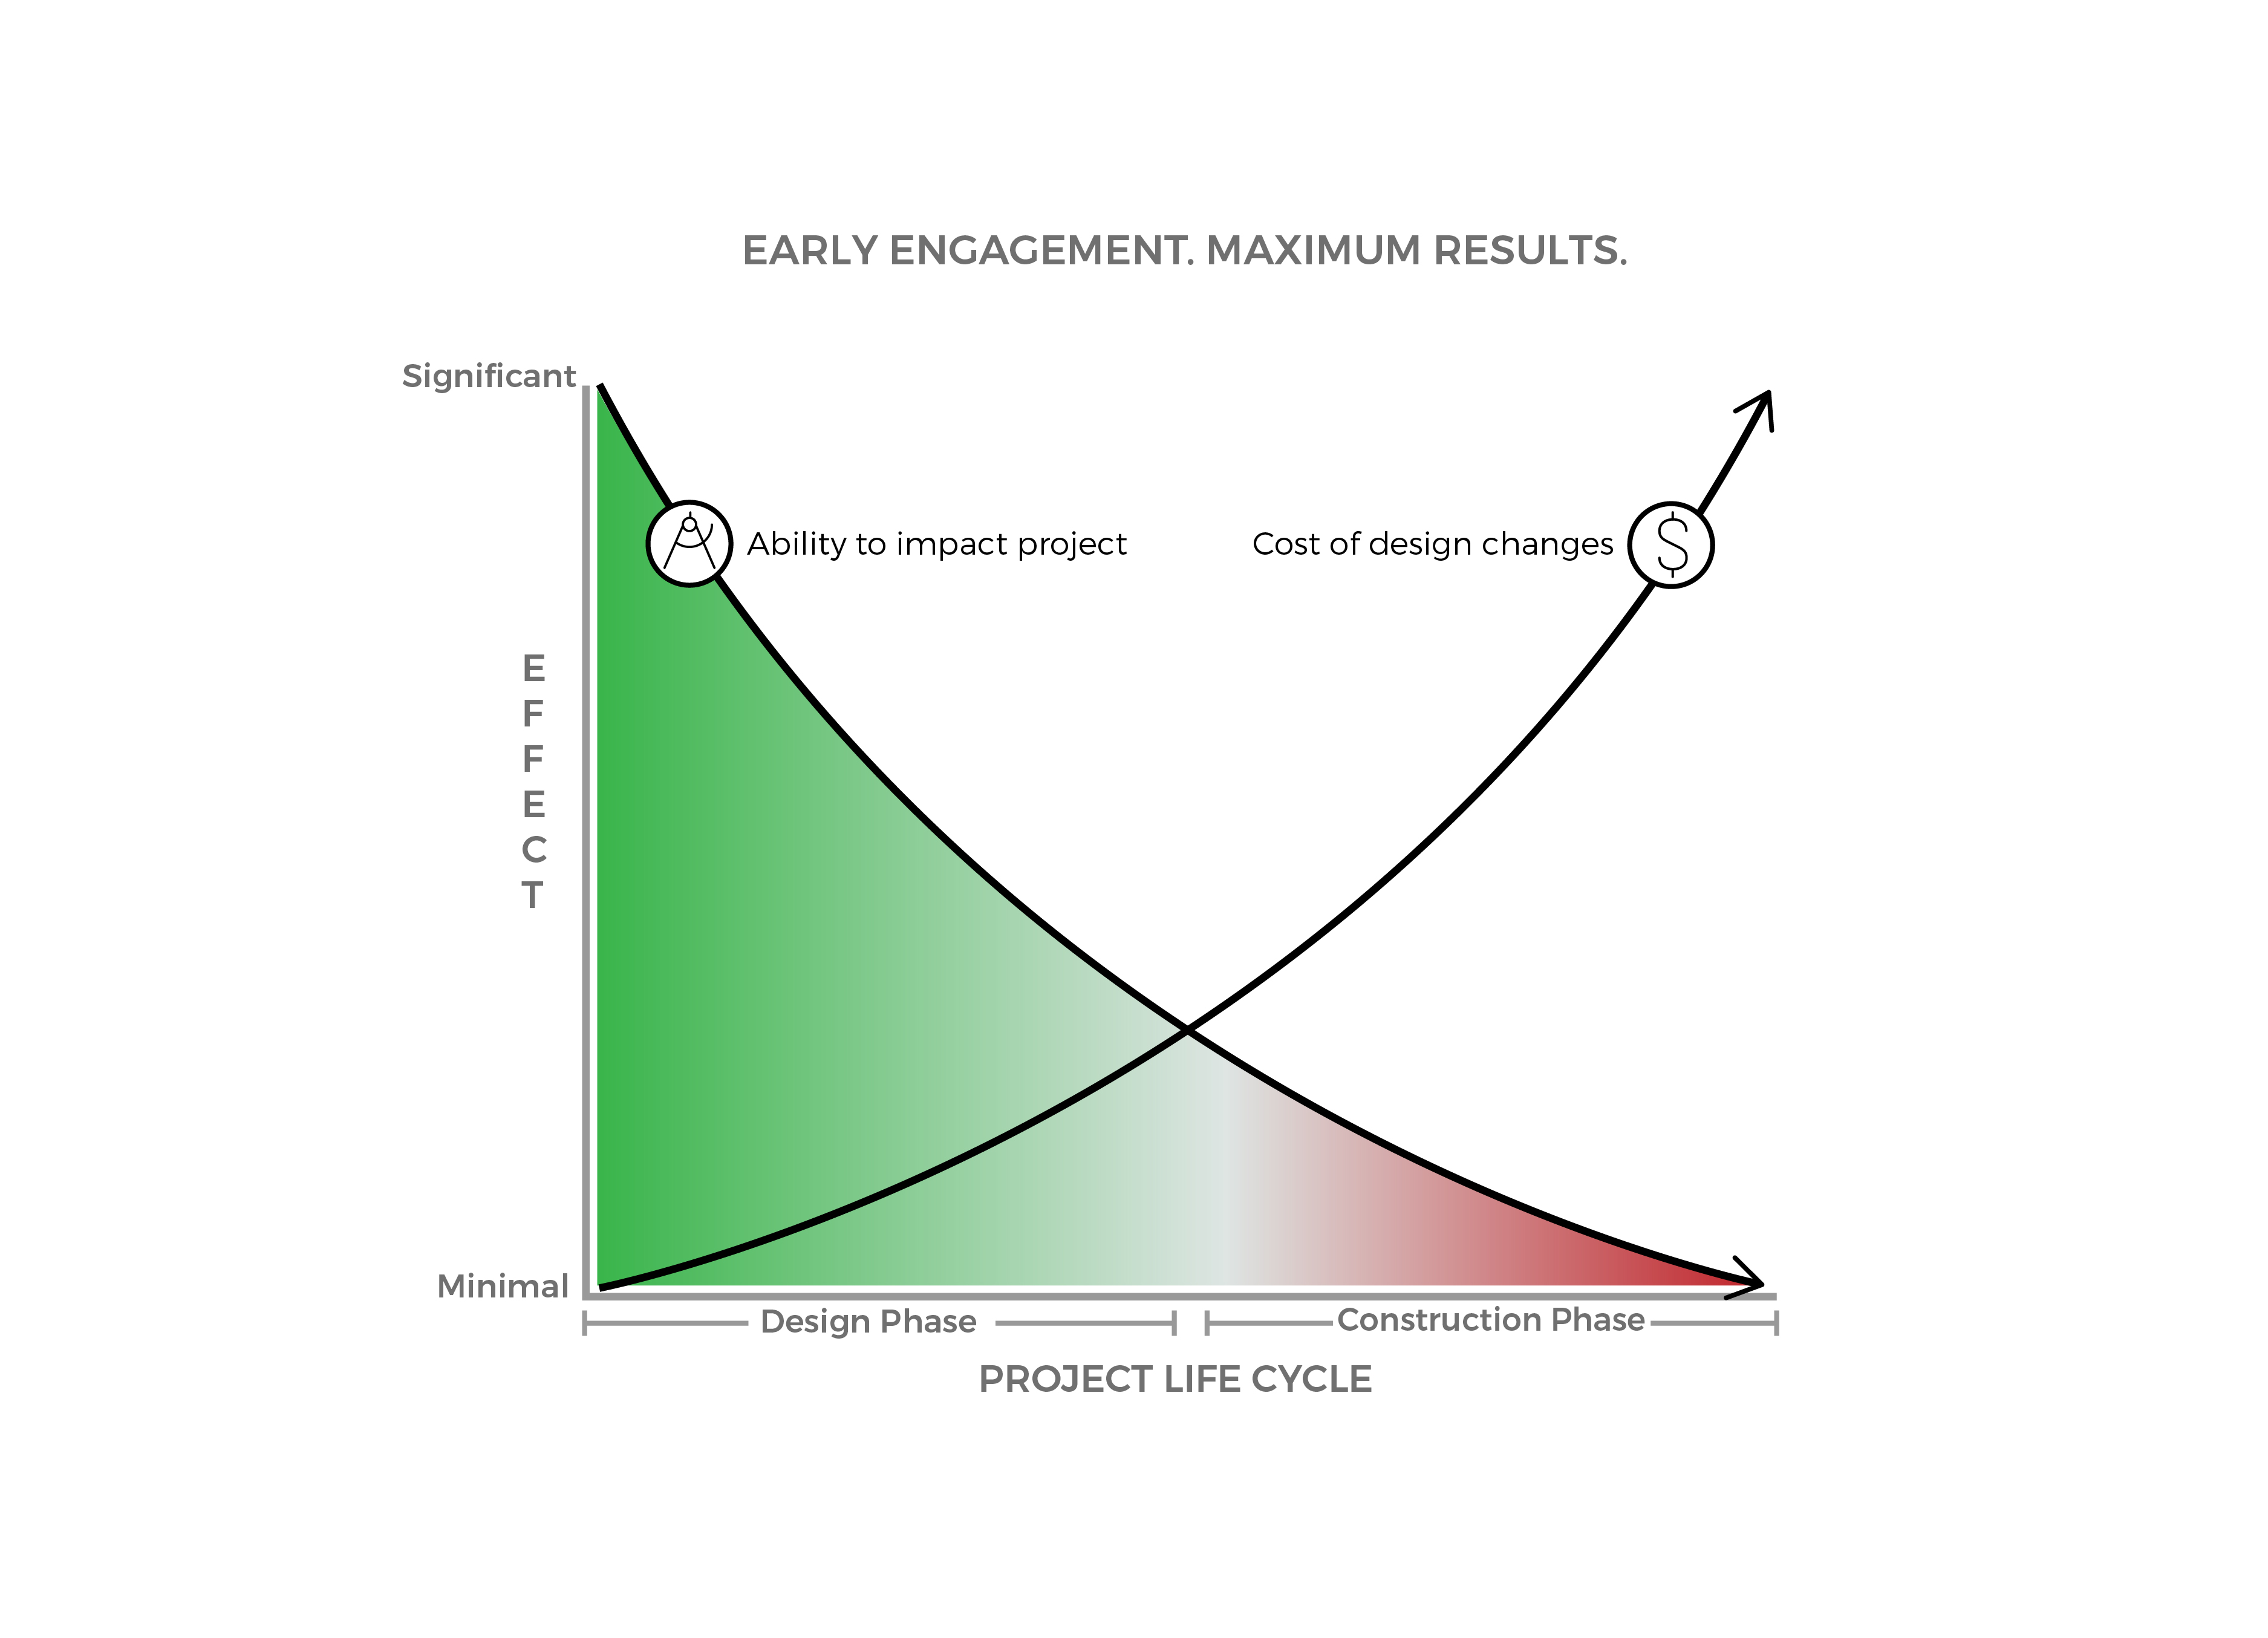 Graph showing the importance of involving perconstruction as early in the process as possible for the maximum cost savings.